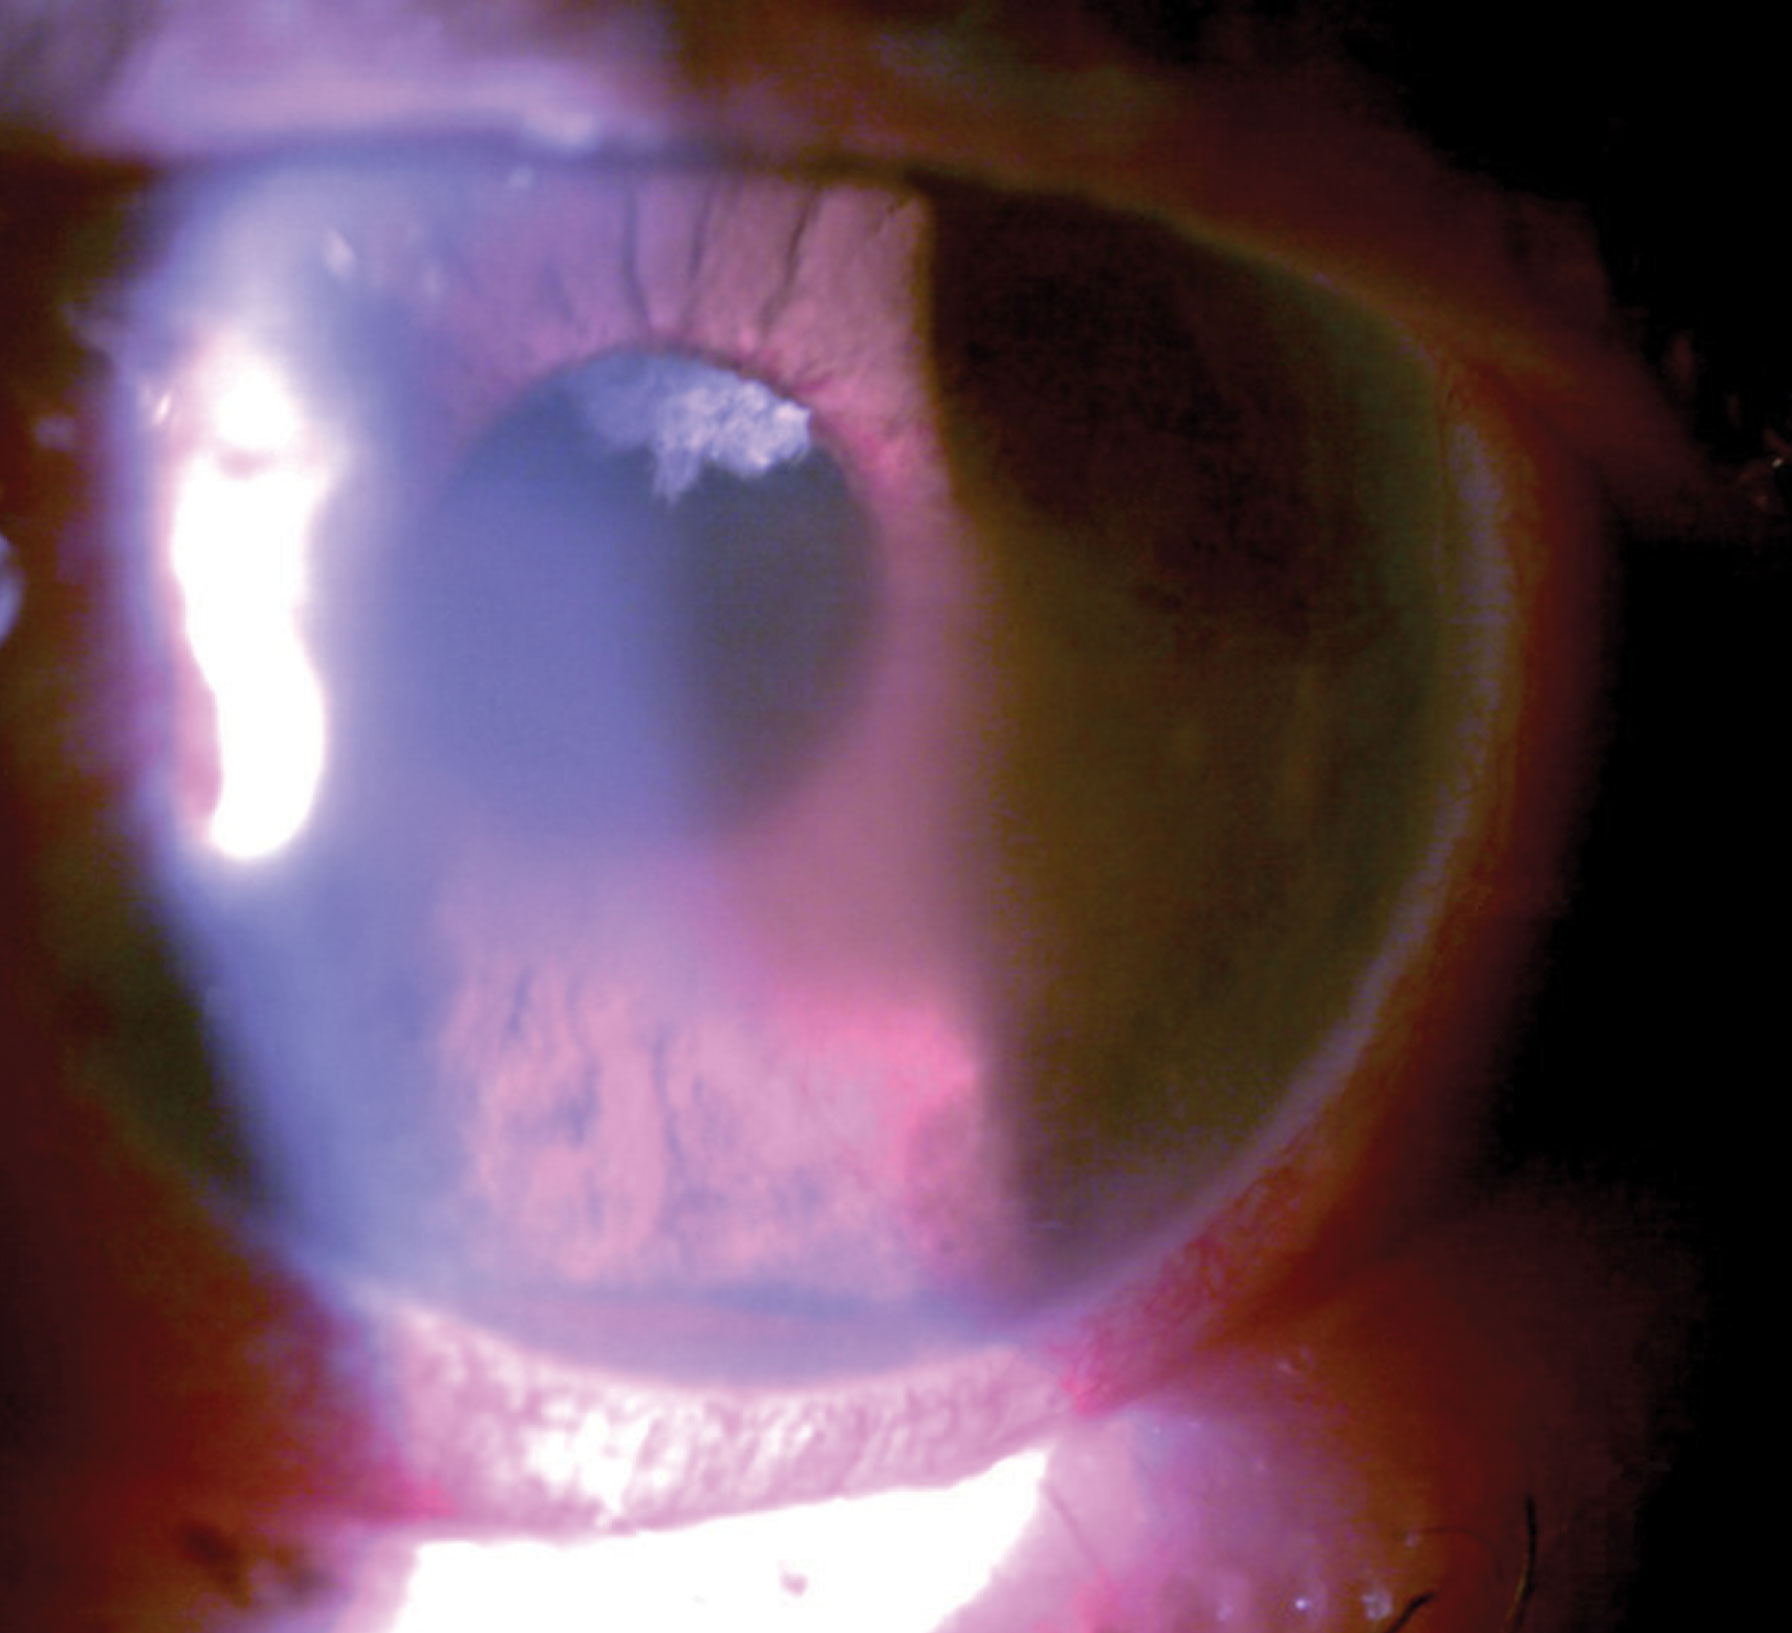 This patient had pain with vision loss and profound pathological findings such as hyphema, microcystic edema and peripupillary iris neovascularization.